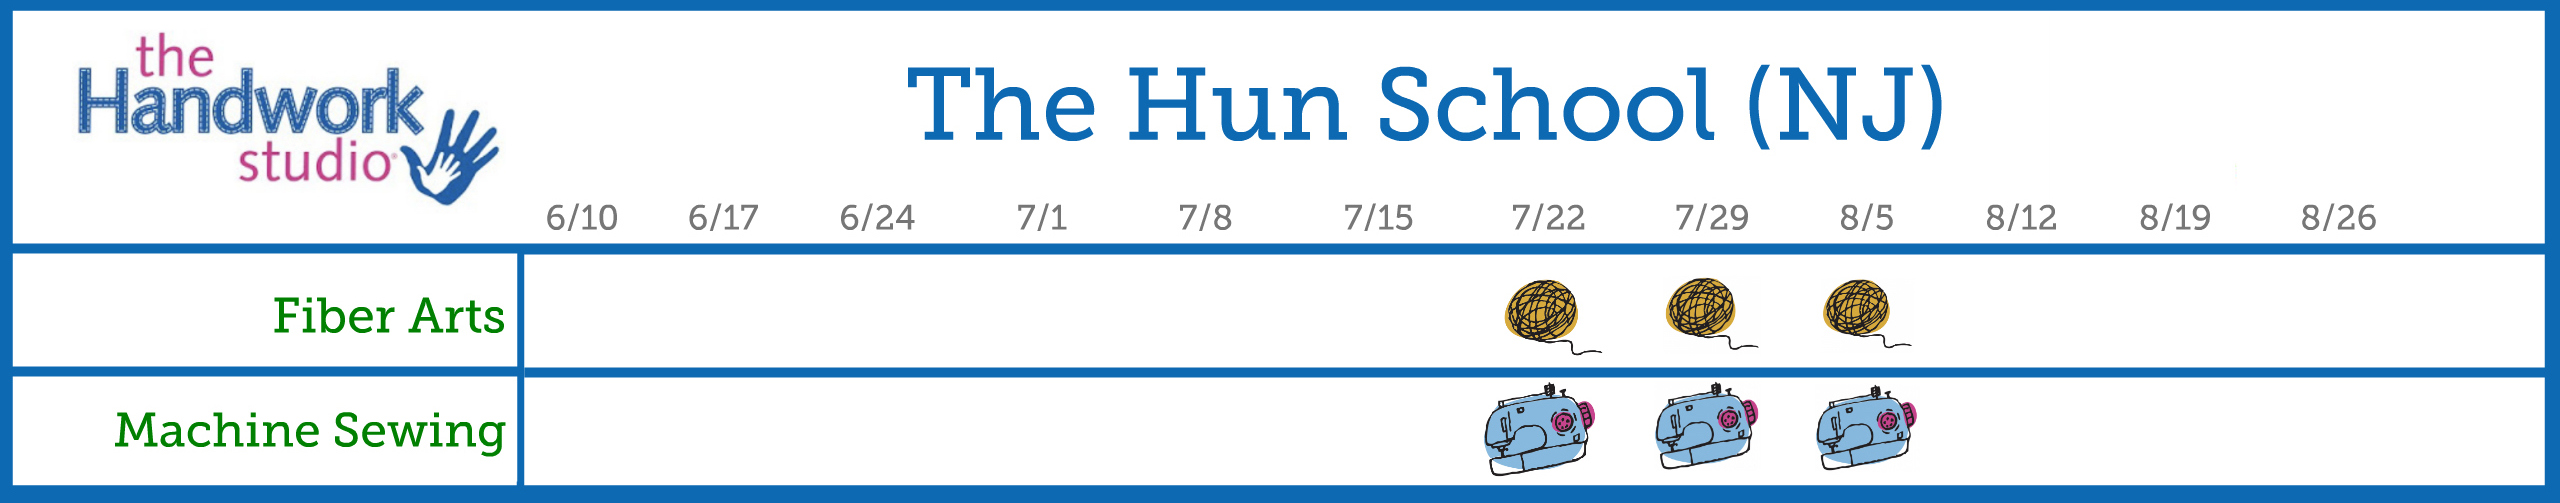 Hun School Program Schedule 2.0